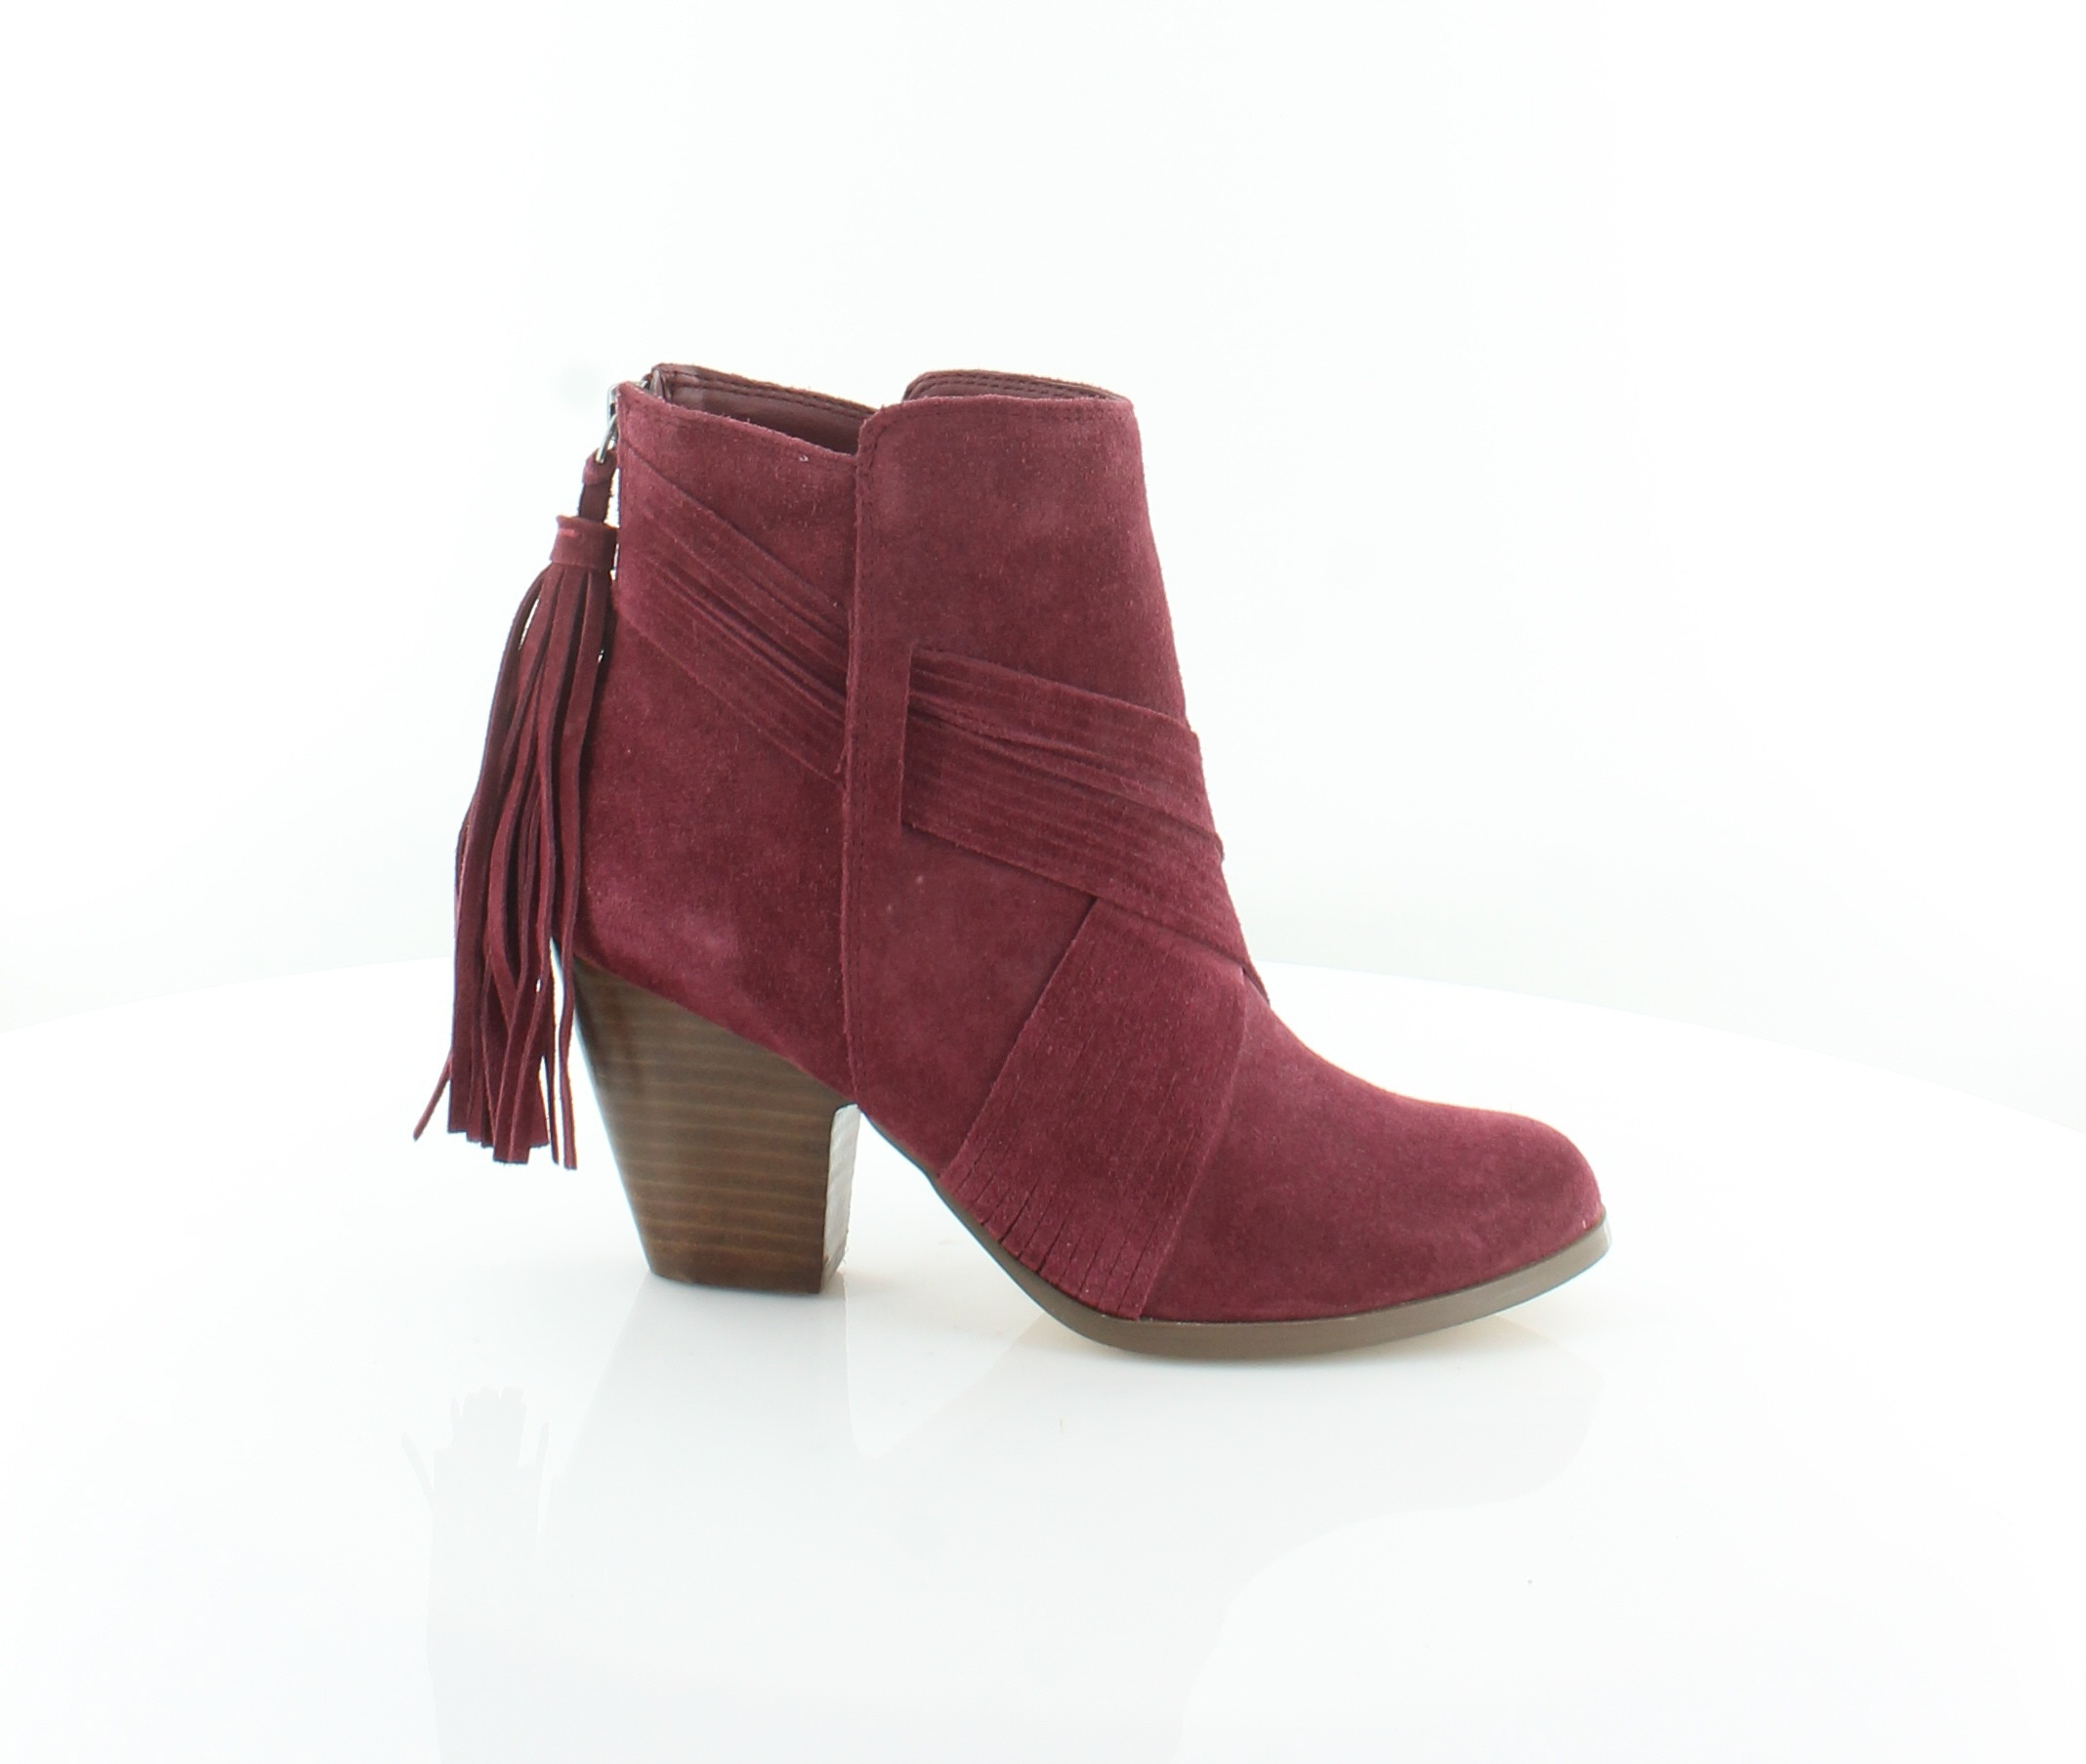 Yellow Box New Exceed Red Womens shoes Size 6.5 M Boots MSRP